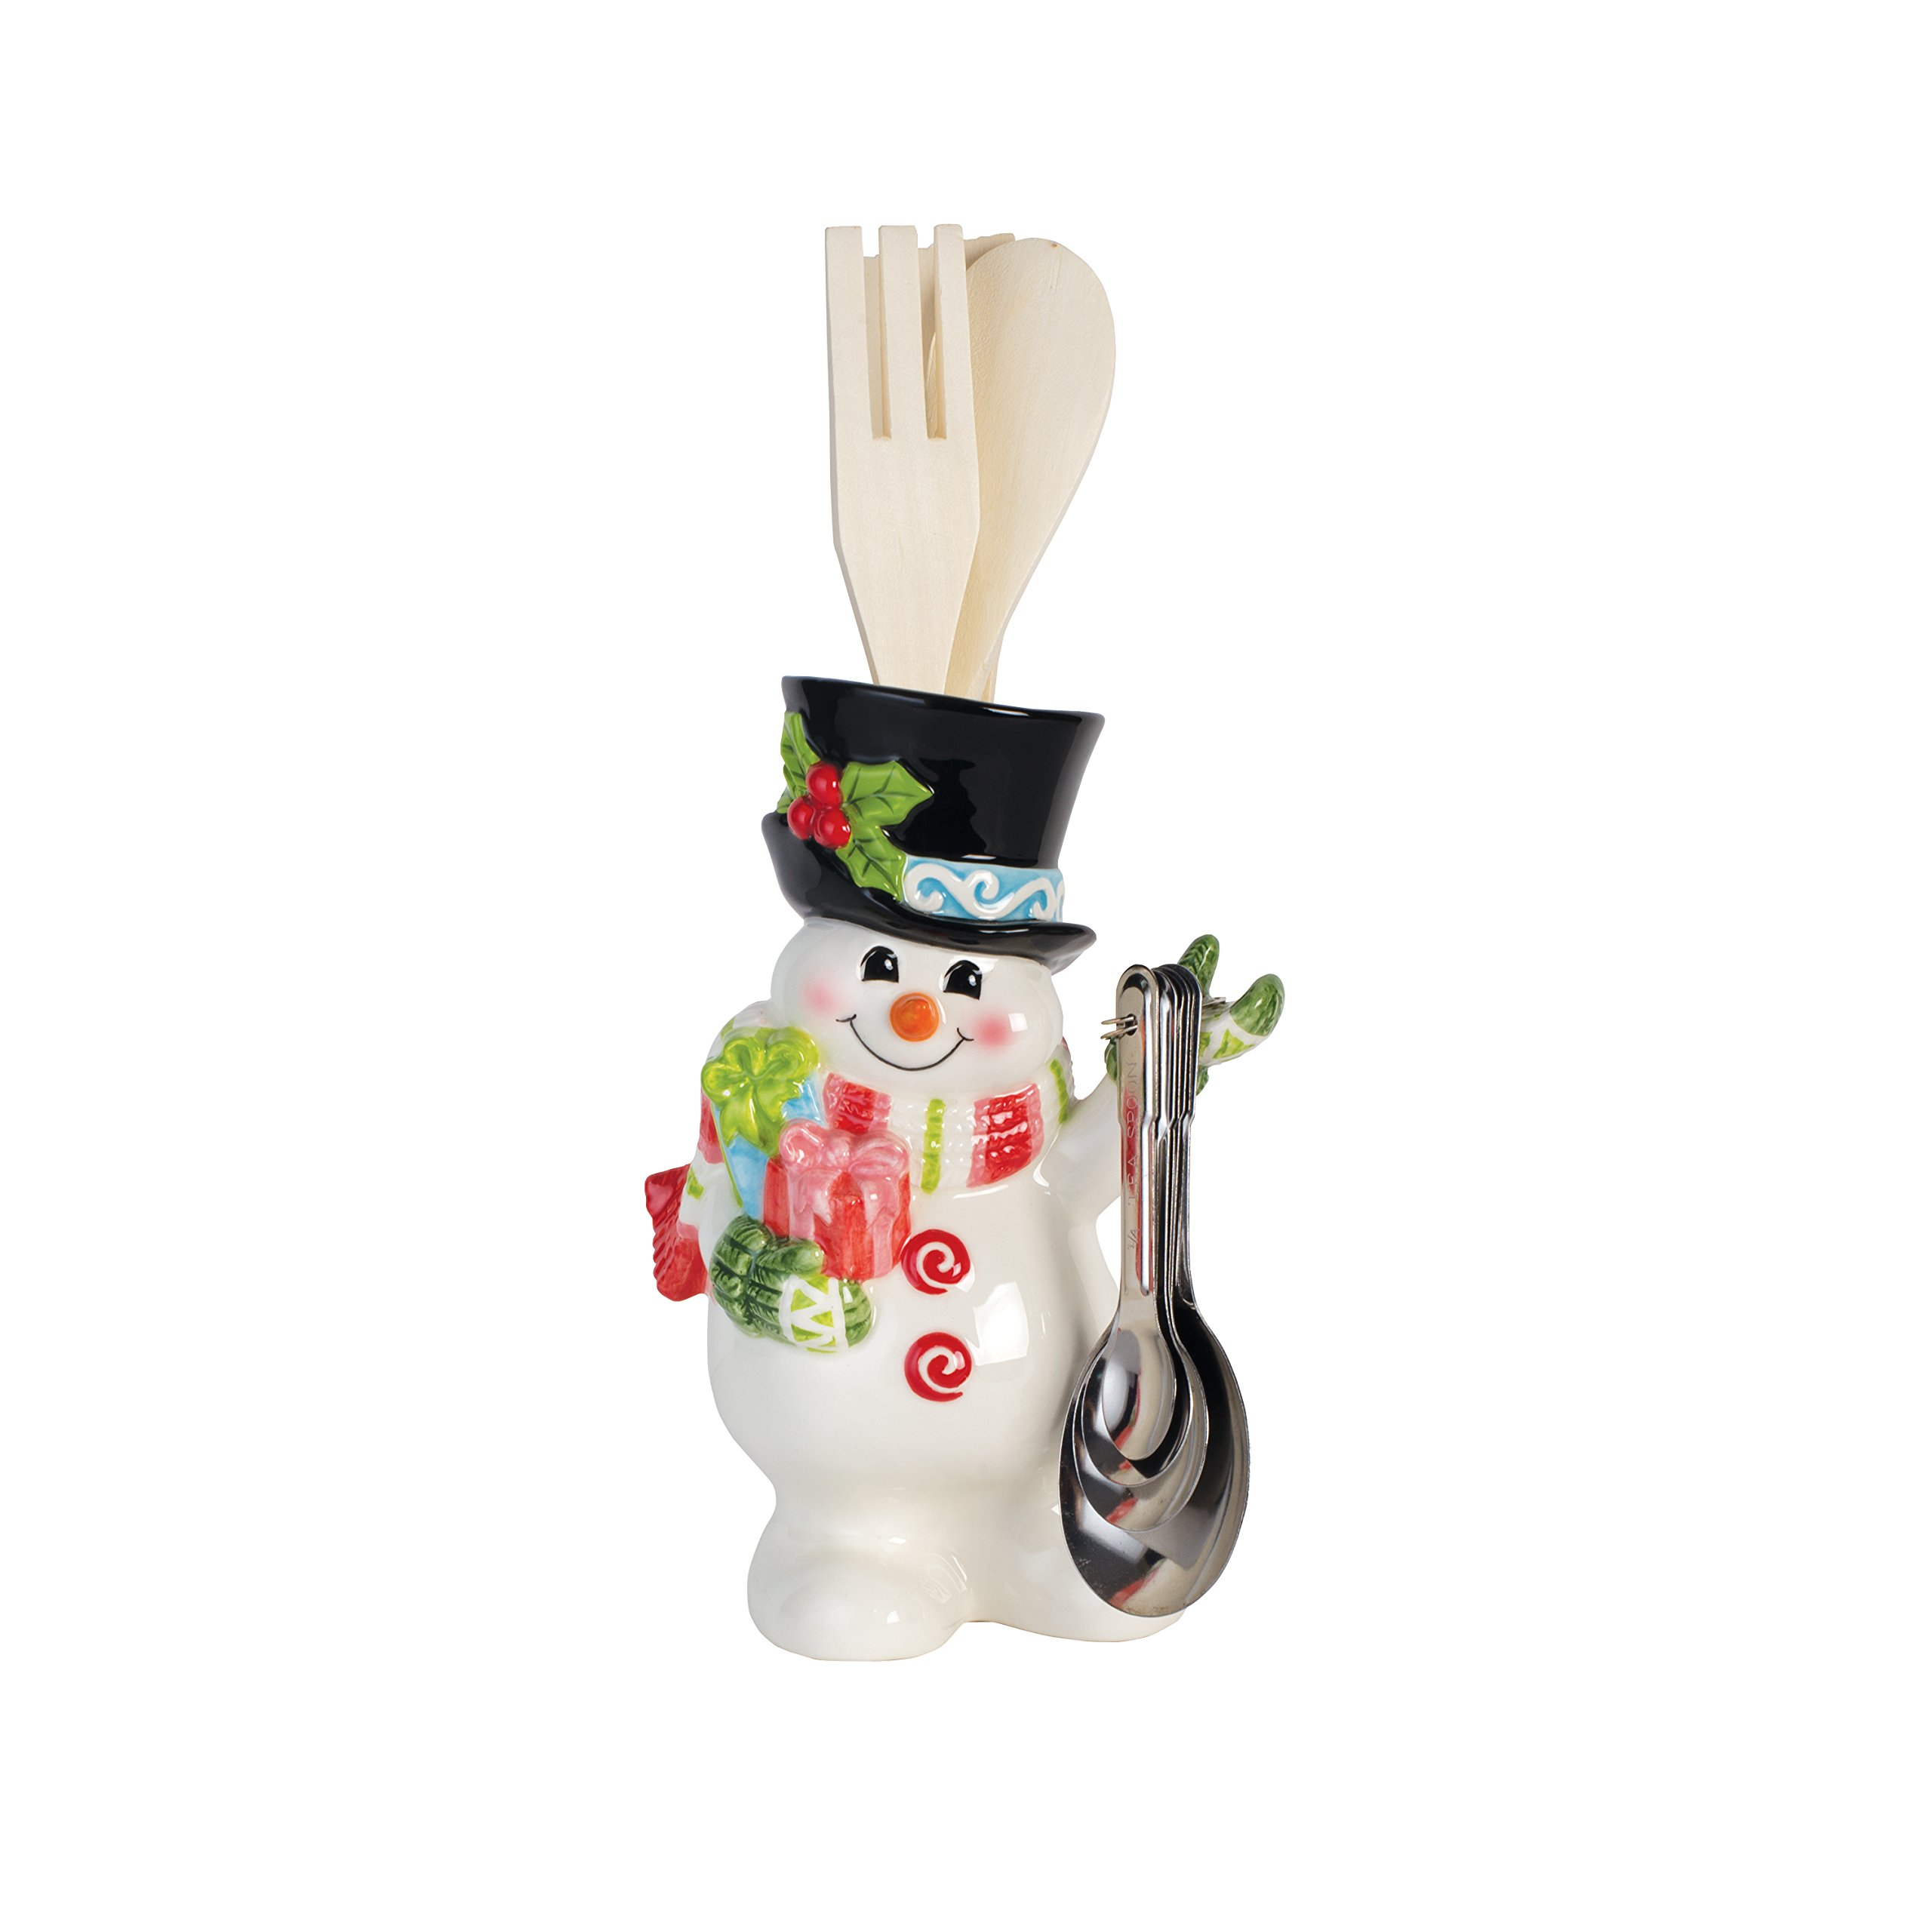 Fitz and Floyd 49-649 Flurry Folk Holder with Utensils and Measuring Spoons, Tools